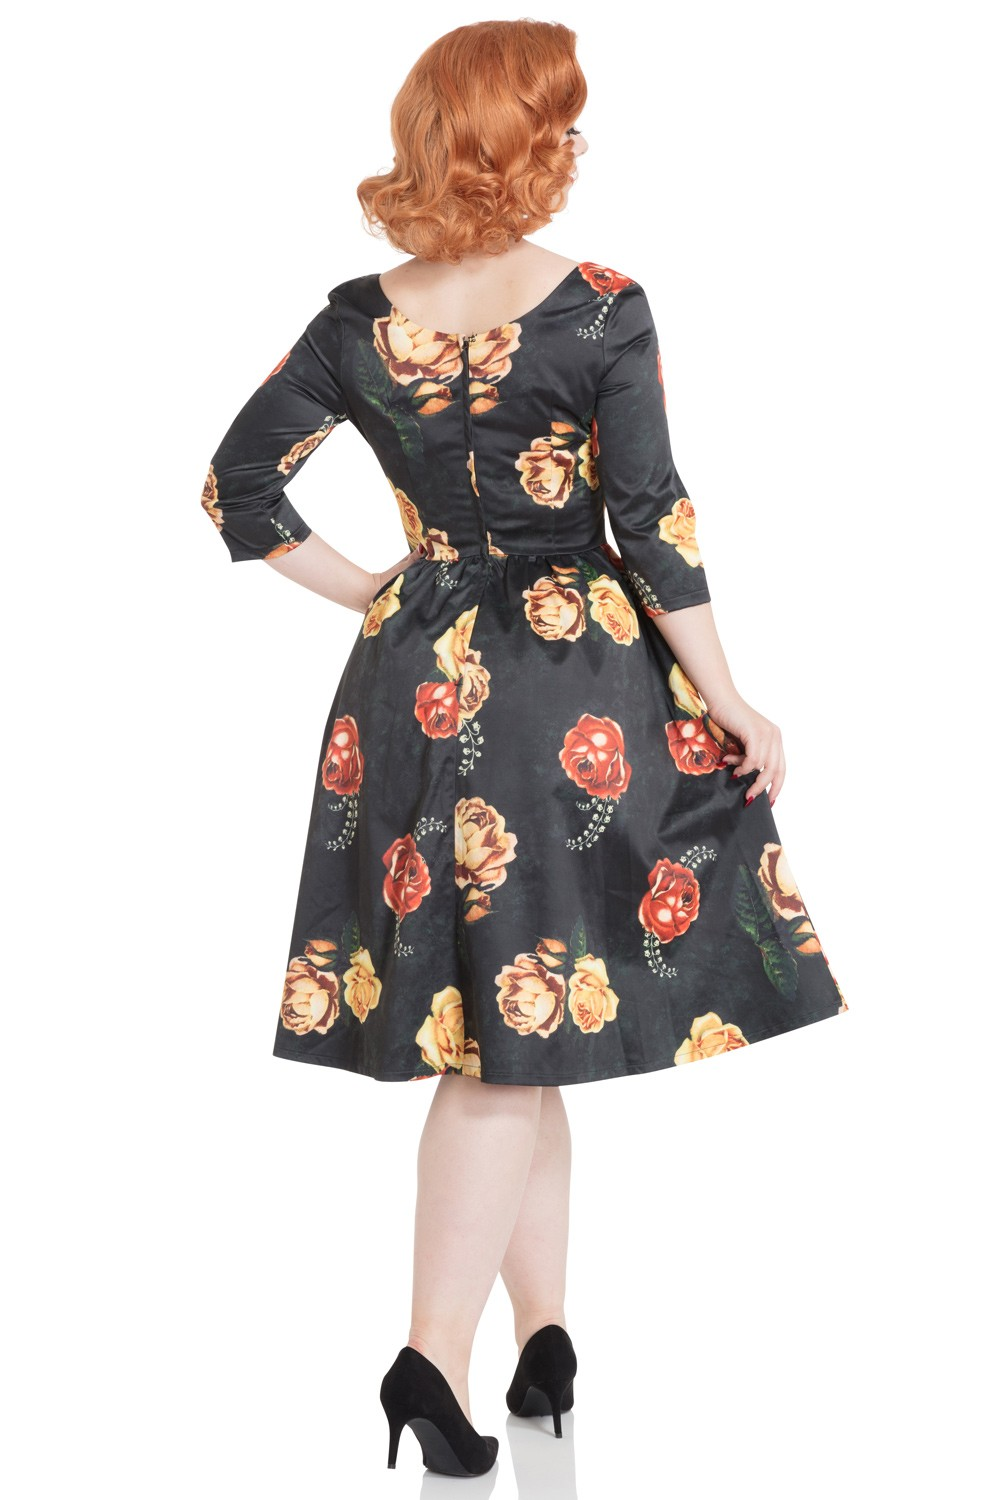 50s Vixen Meg Floral Swing Black Dress